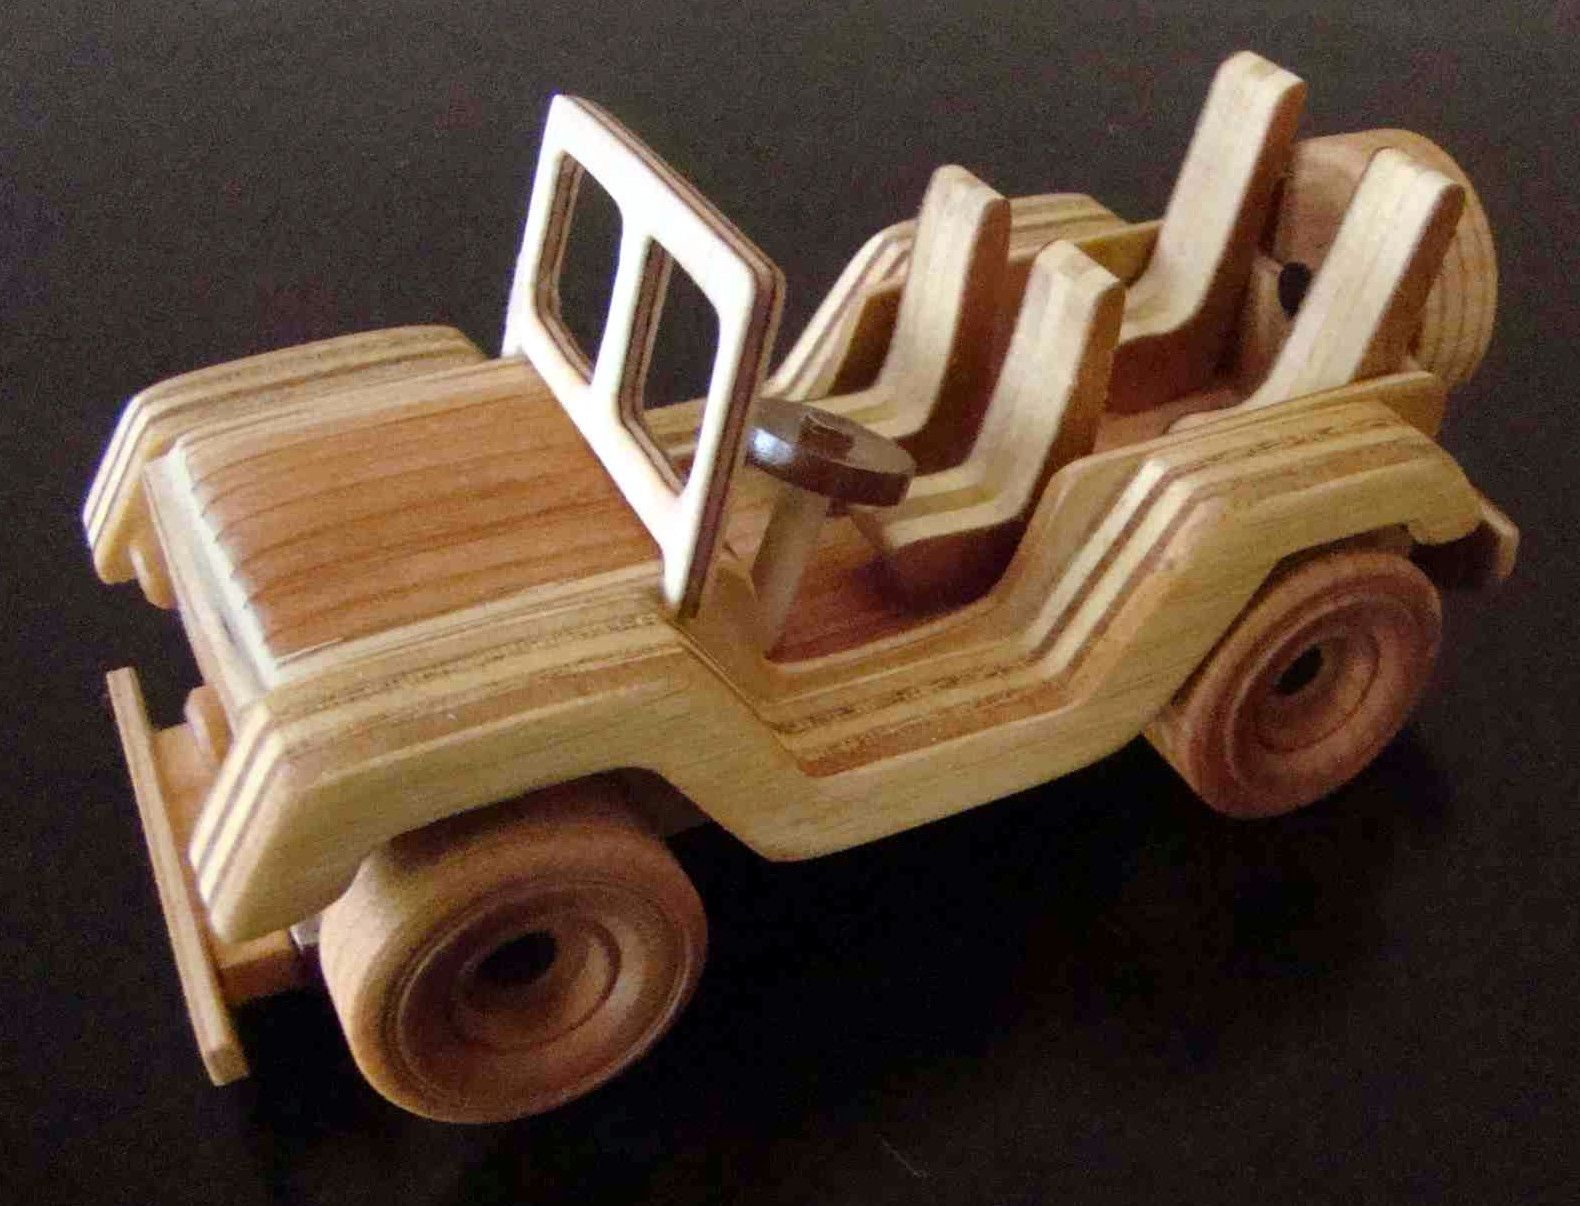 Jeep car toys  Handmade Wooden Toy Jeep odinstoyfactoy handmade handcrafted